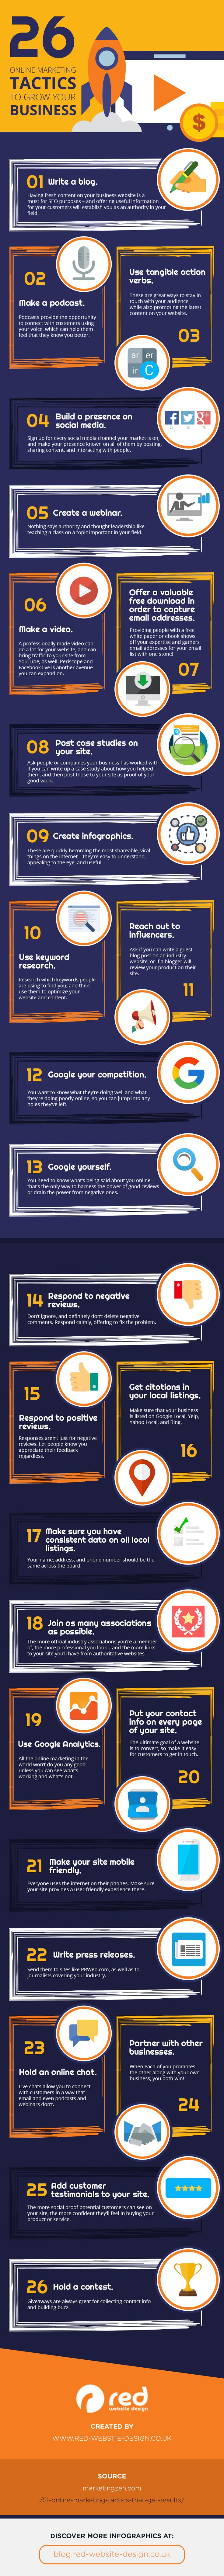 26 Online #Marketing Tactics to Help You Grow Your #Business #Infographic